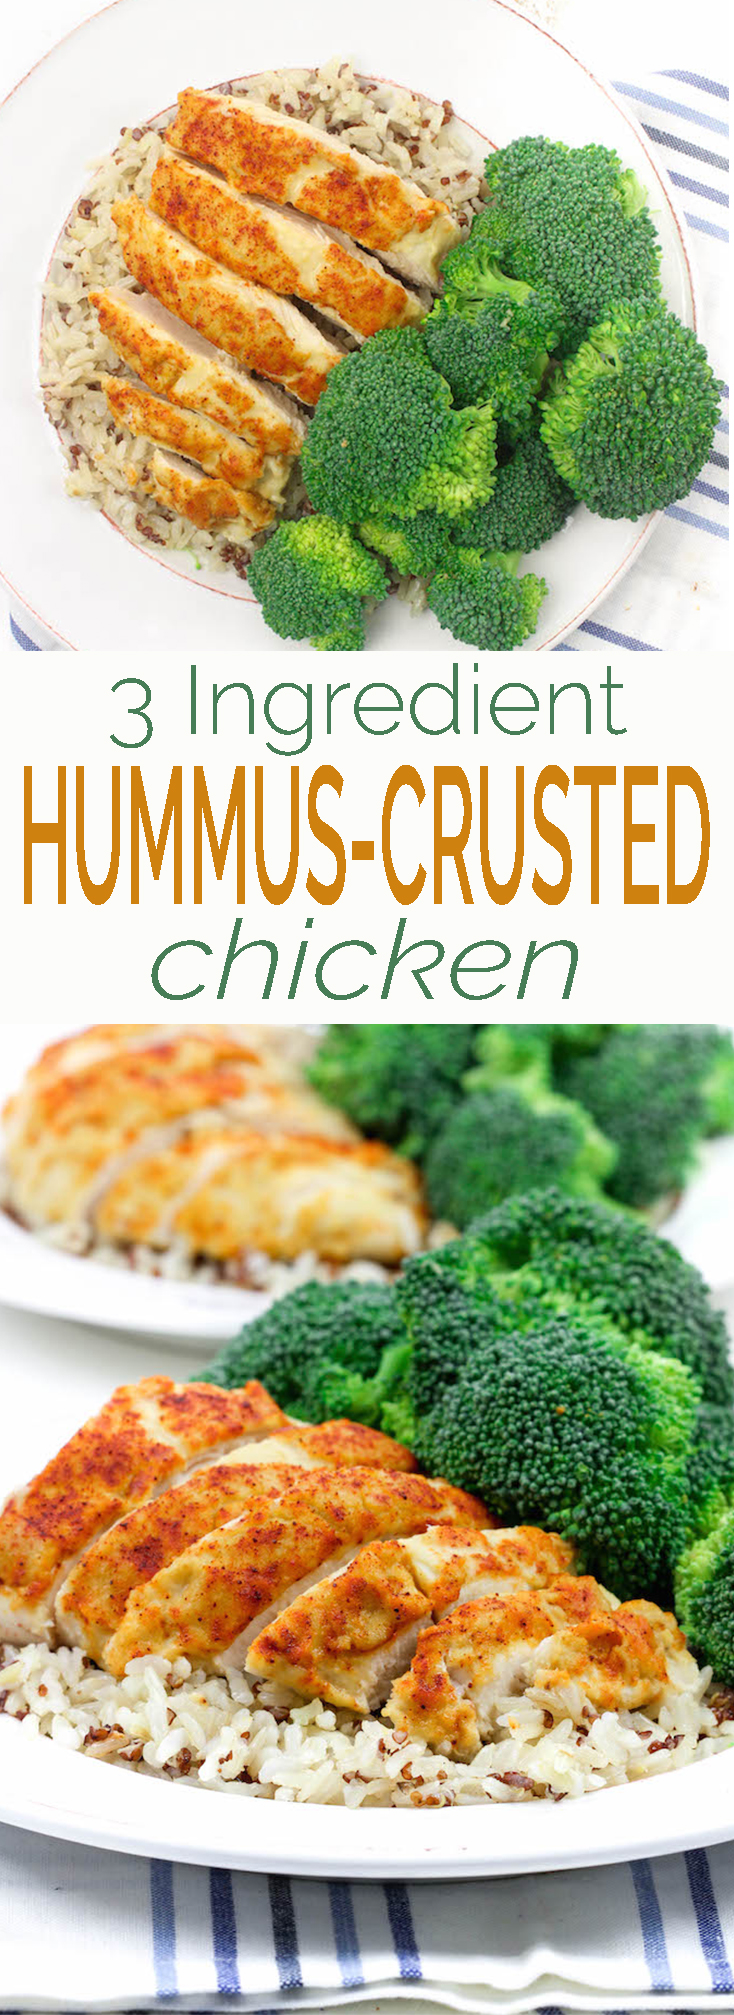 3-Ingredient Hummus-Crusted Chicken is simple, requiring just 5-minutes prep. A healthy whole-food, protein packed, weeknight meal.